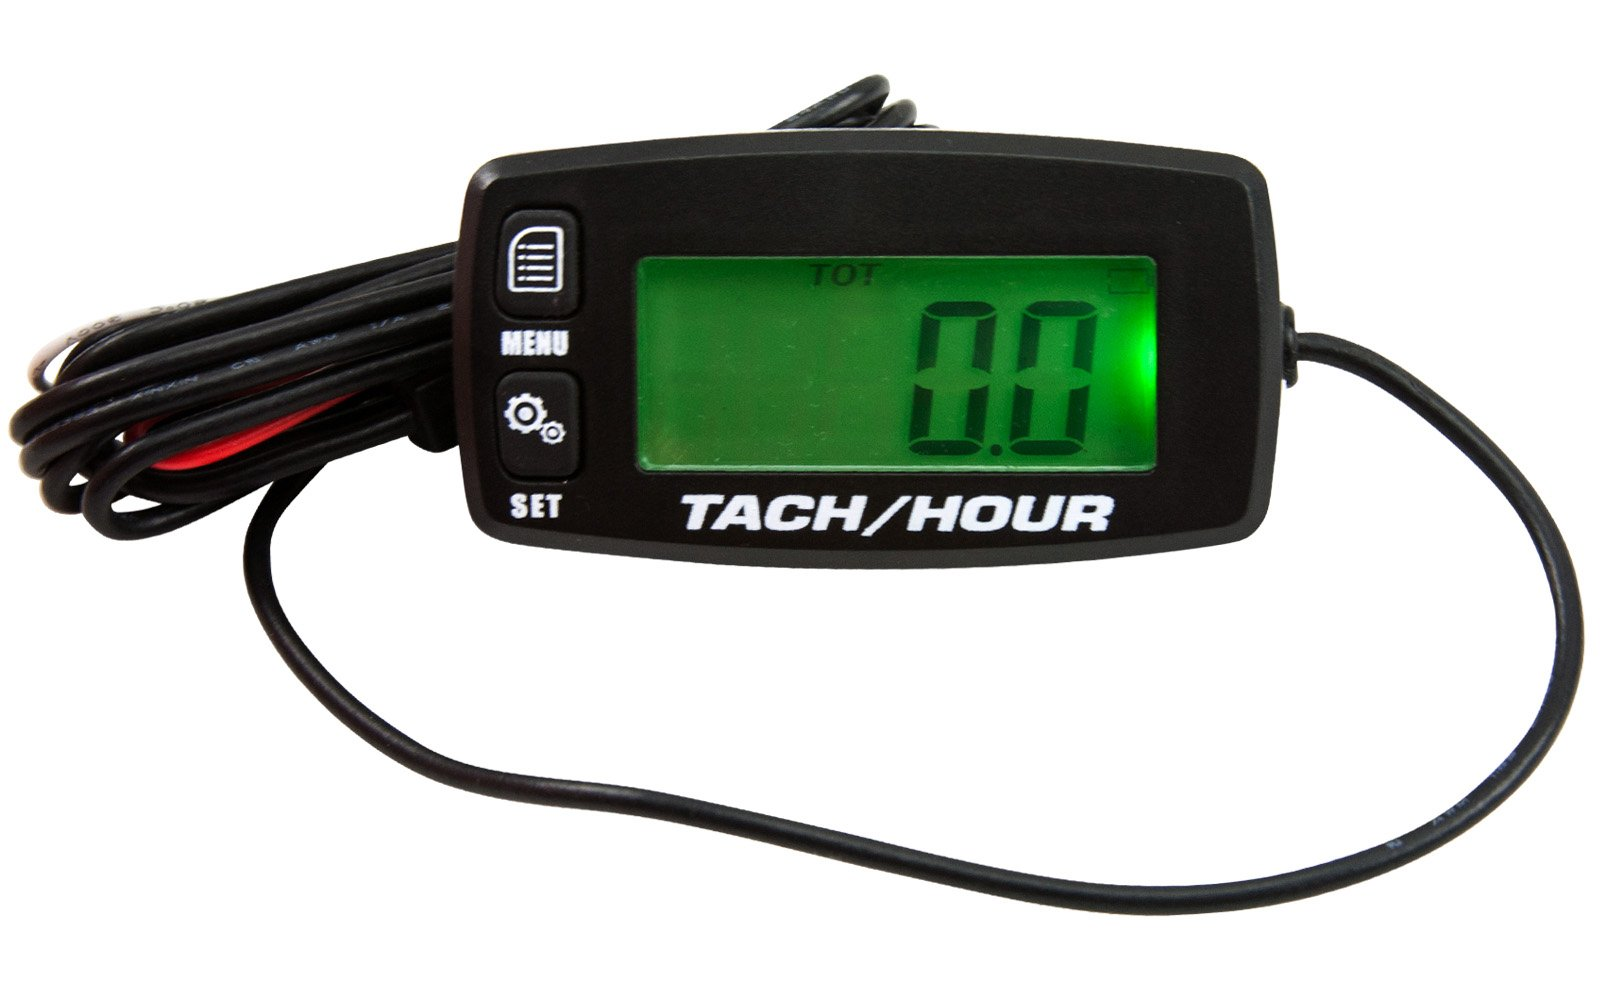 New Back Lit LCD Tach / Hour Meter Service & Job Timers w/ Replaceable Battery by Other (Image #1)